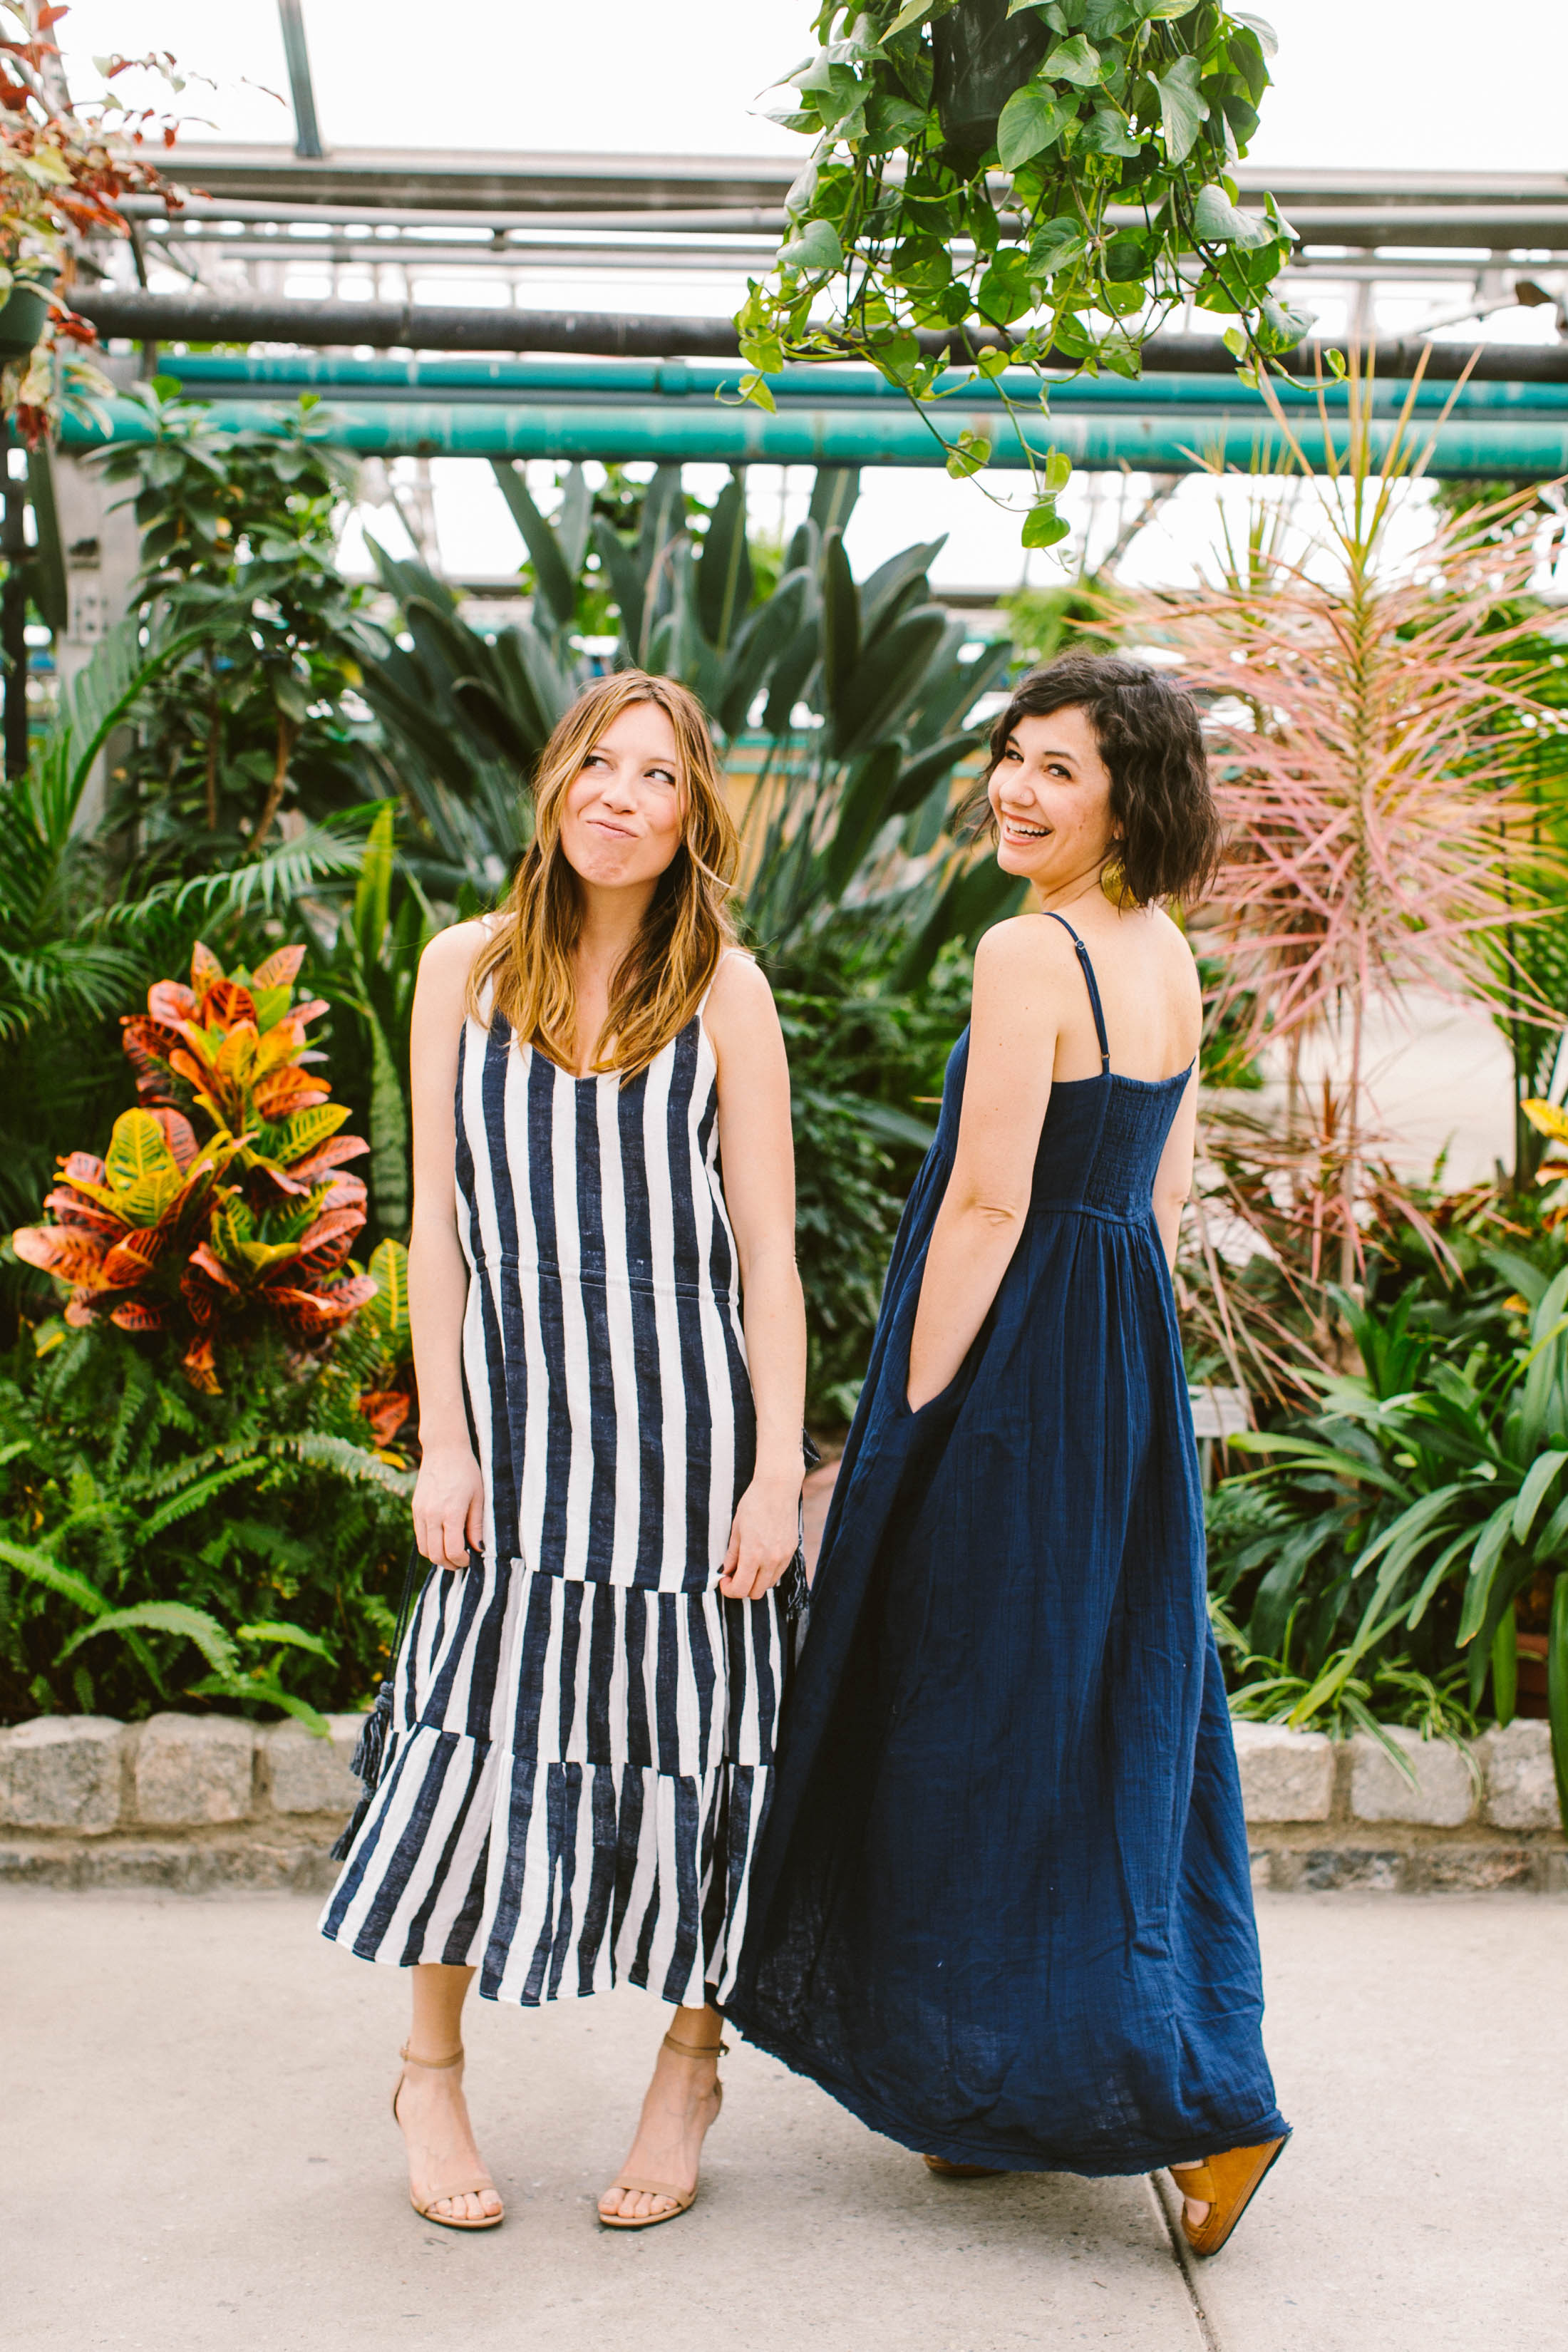 From flowy boho-chic tees to breezy maxi & wrap dresses, Voloshin's handprinted pieces are insanely well-suited for summer outfits. We love the spring line.